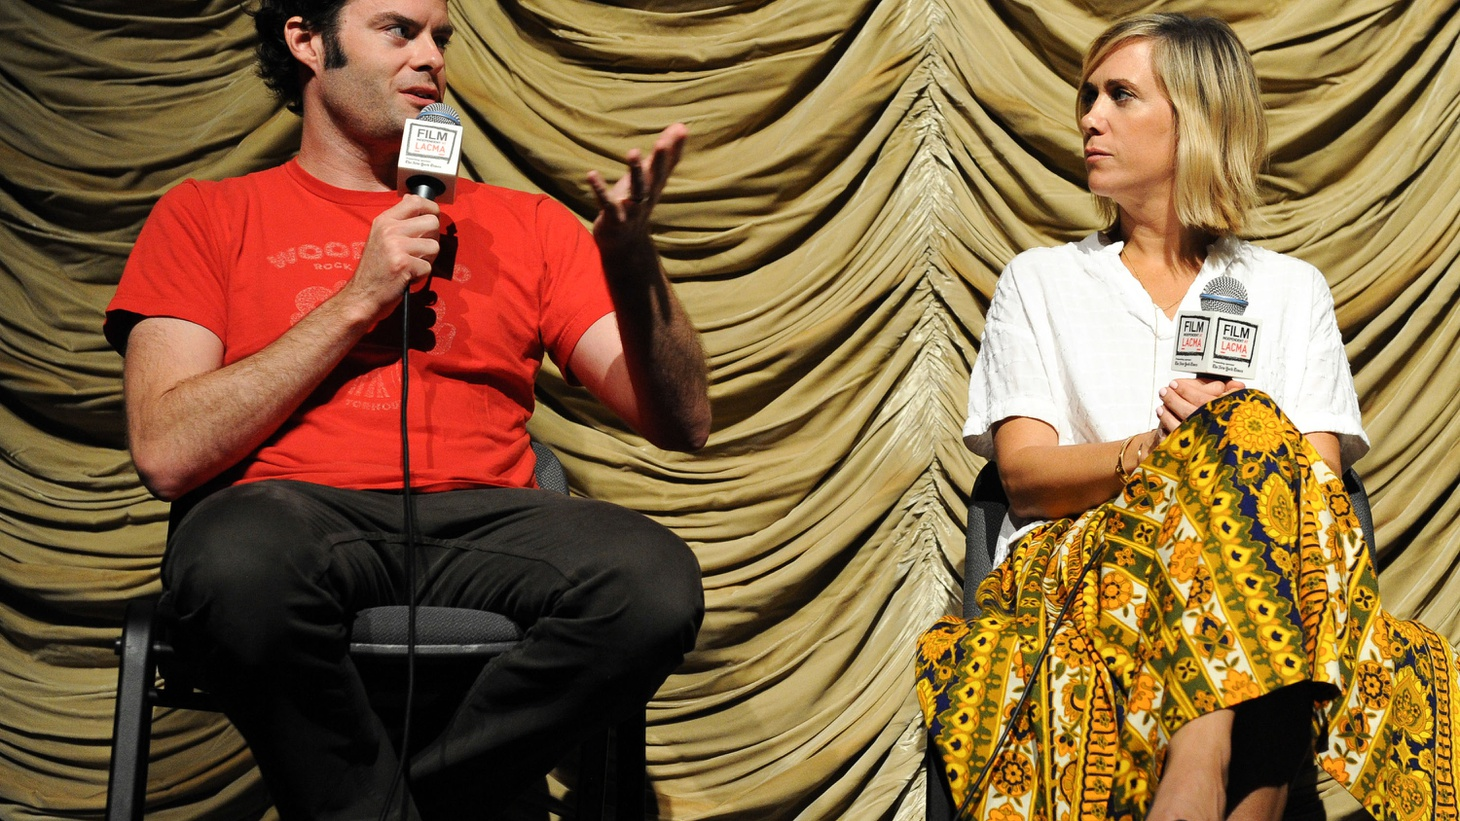 Writer/director Craig Johnson and stars Bill Hader and Kristen Wiig talk about their new film, The Skeleton Twins. Contains adult language.